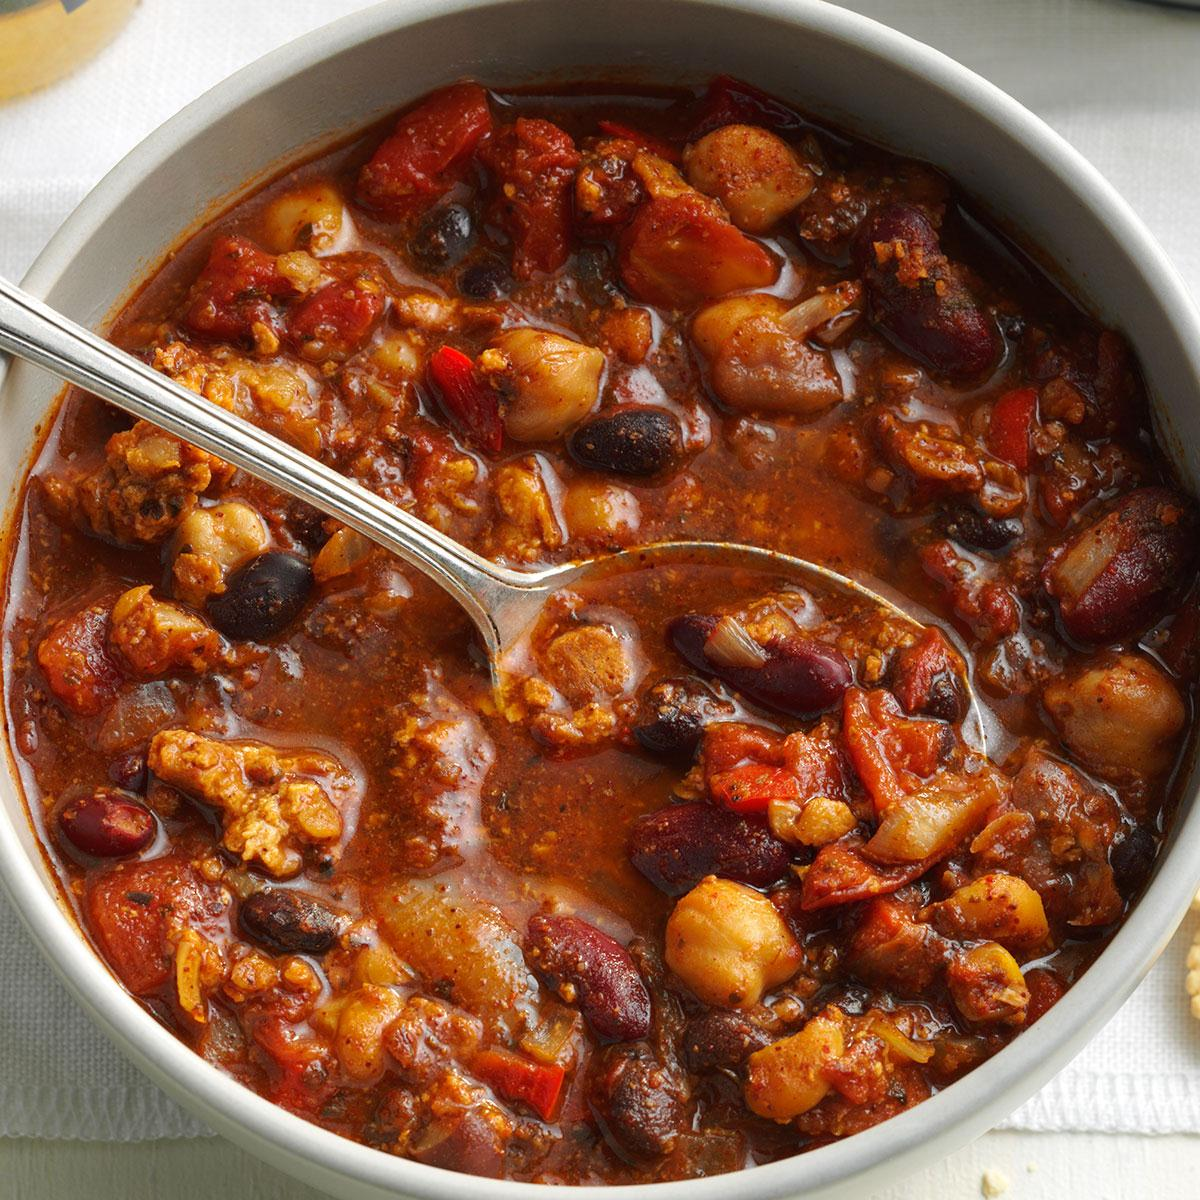 Marty S Bean Burger Chili Recipe How To Make It Taste Of Home